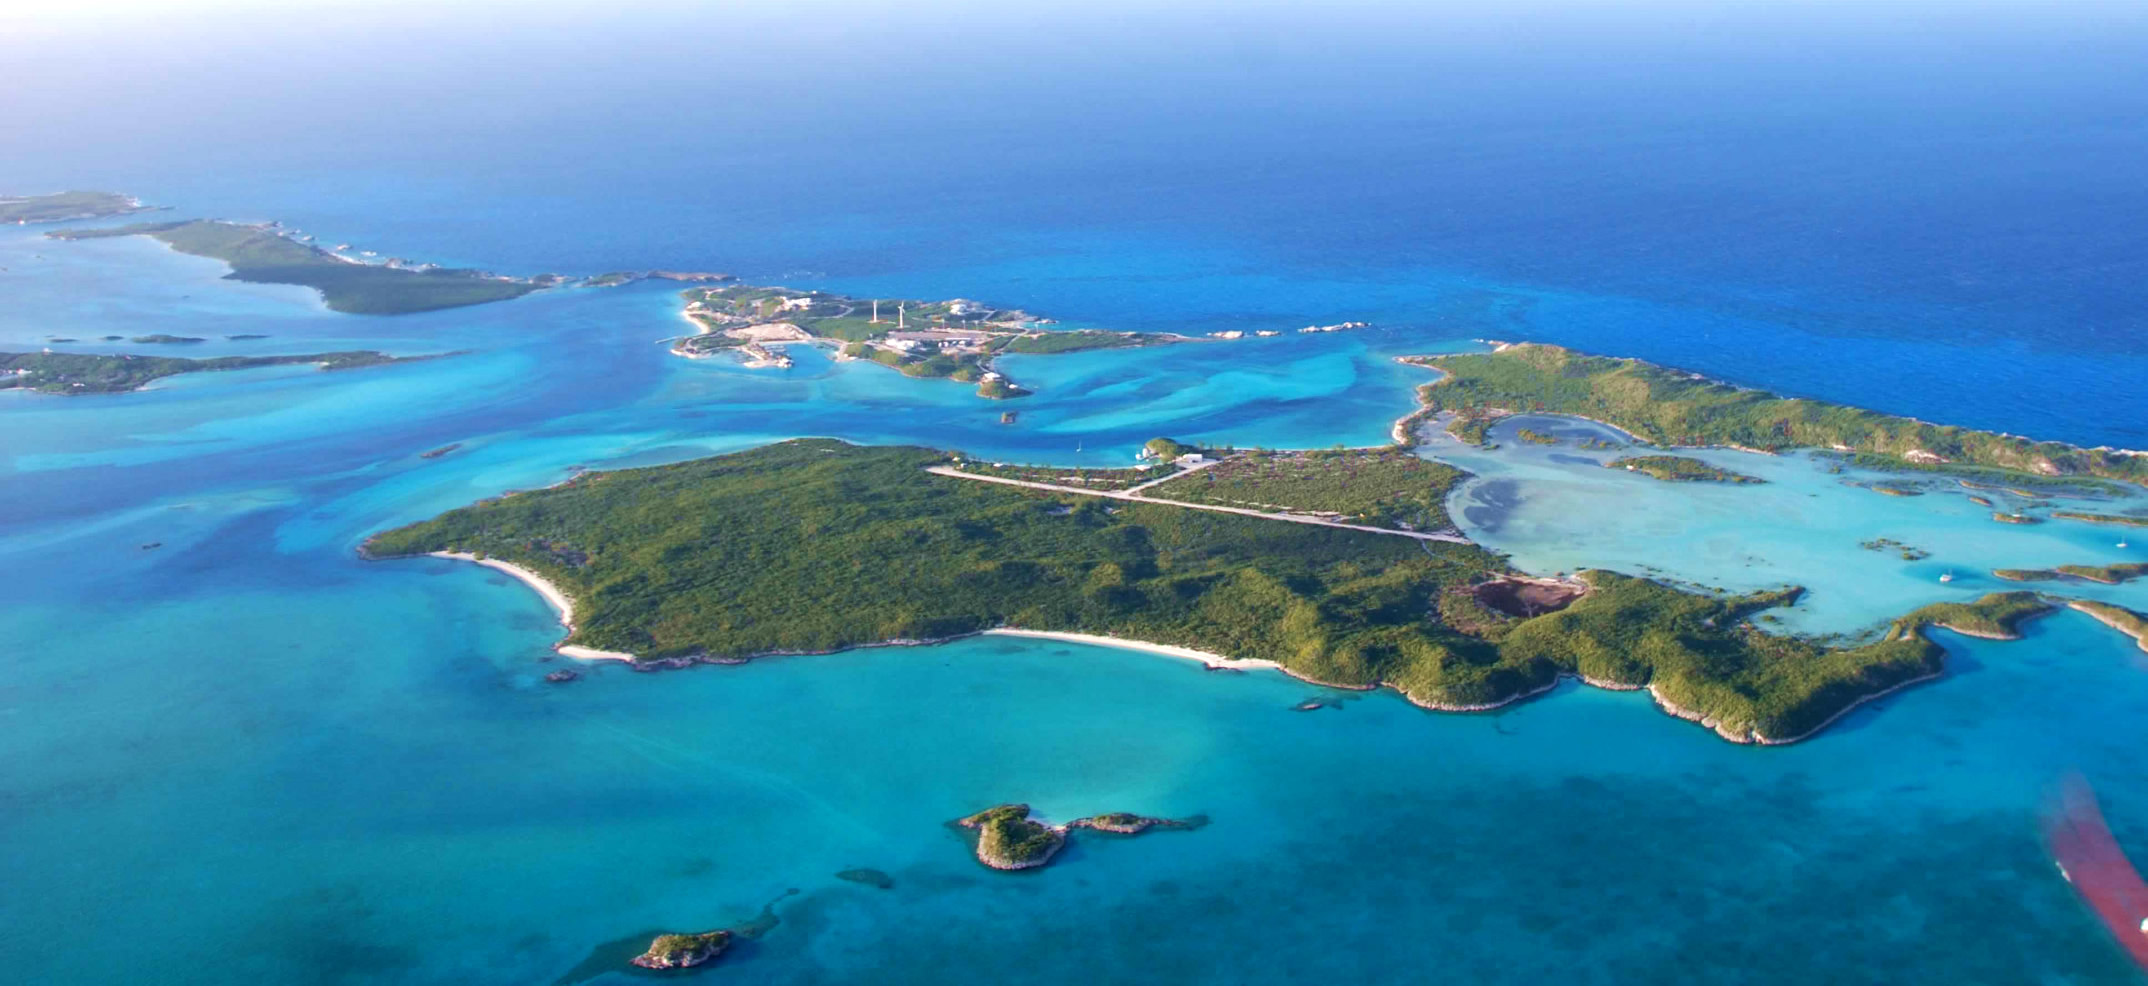 Big sampson cay the exumas bahamas caribbean for Bahamas private island for sale